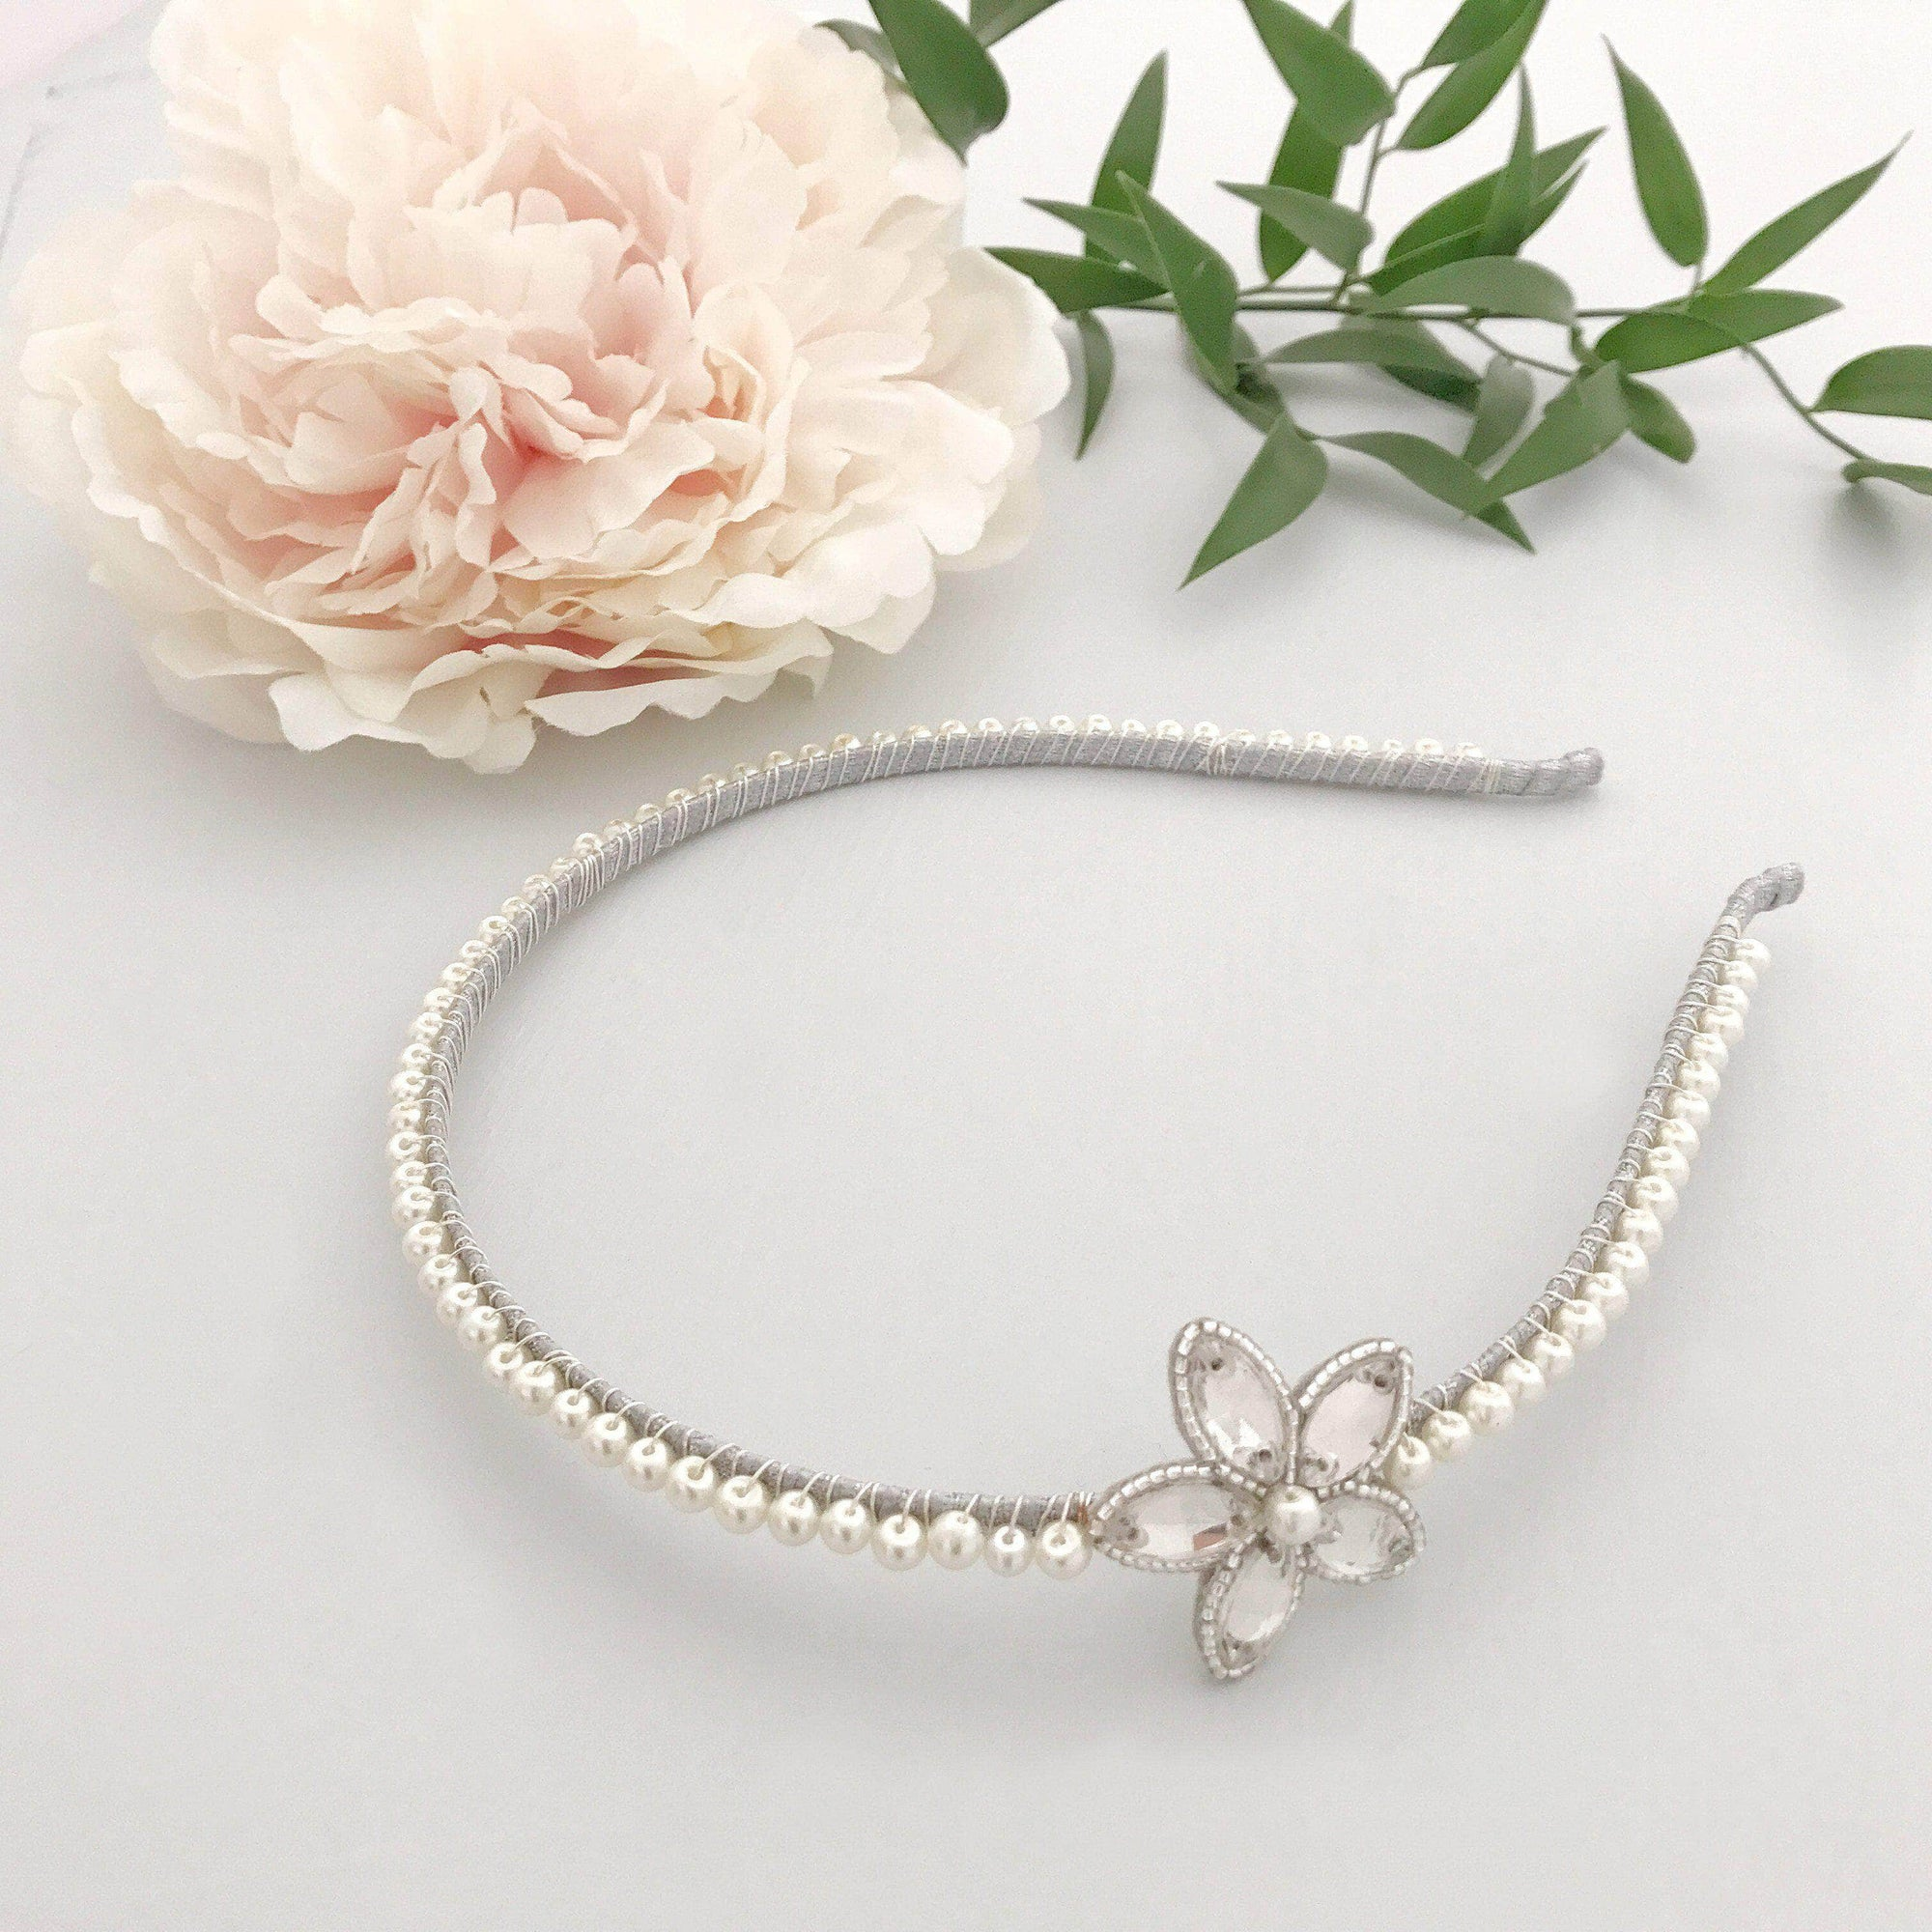 Wedding Headband Silver / Silver sparkle (as in images) Pearl and flower silver wedding headband 'Sia'